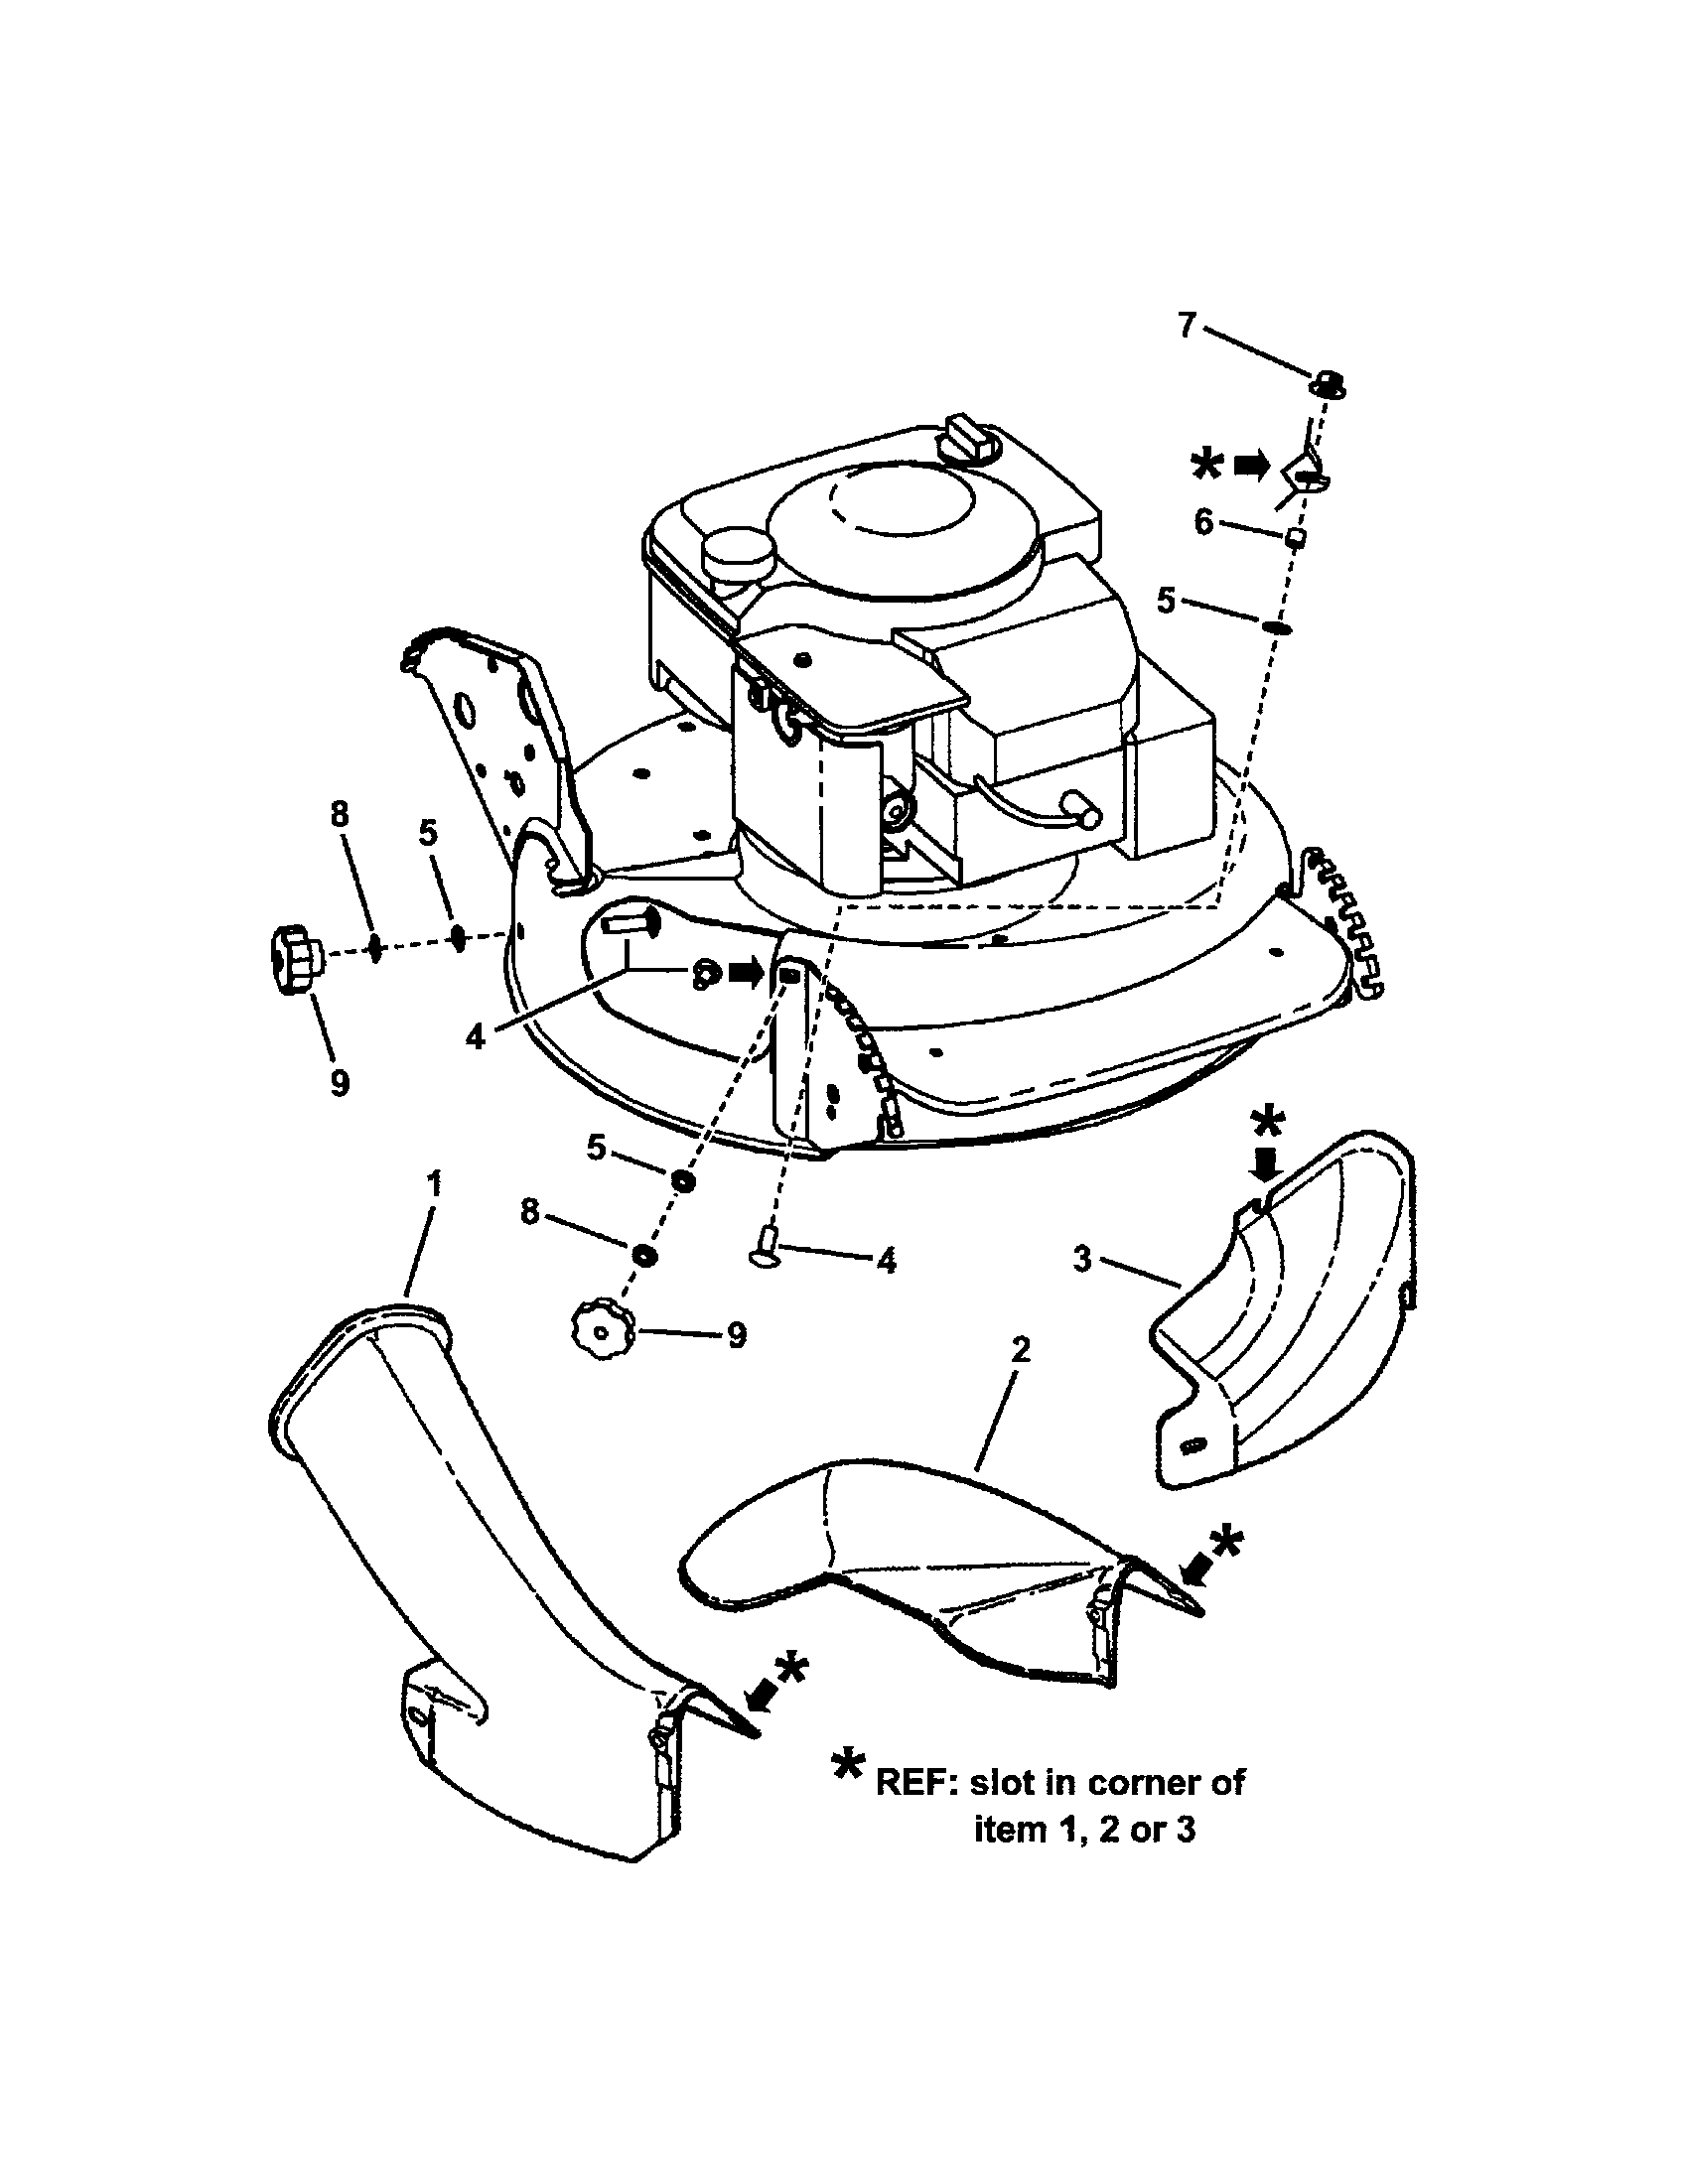 Lawn Mower Diagram And Parts List For Craftsman Walk